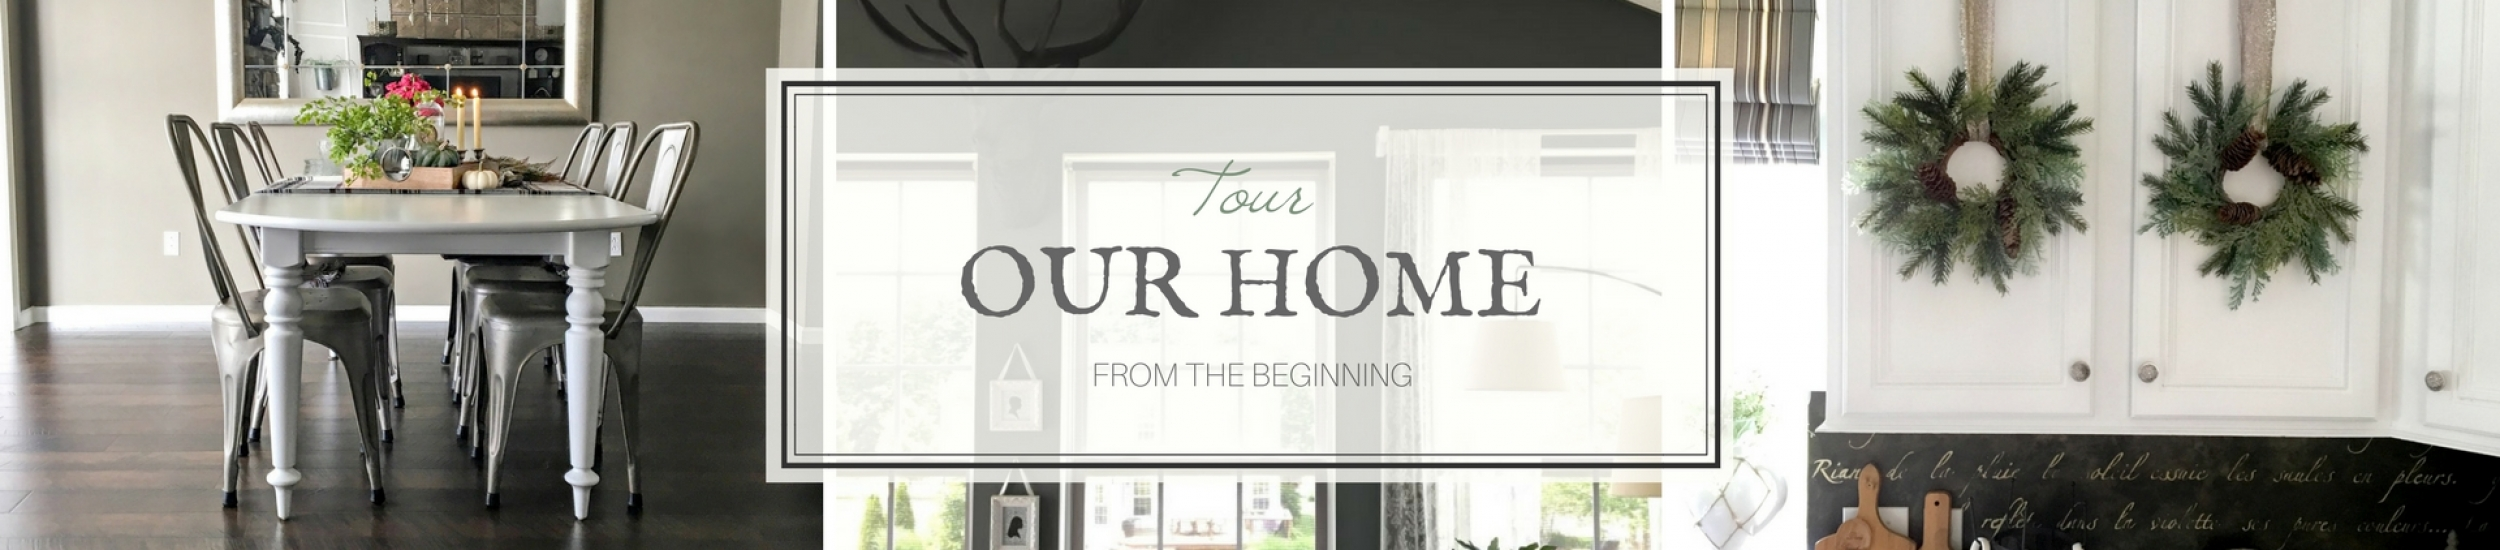 Tour Our Home from the Beginning